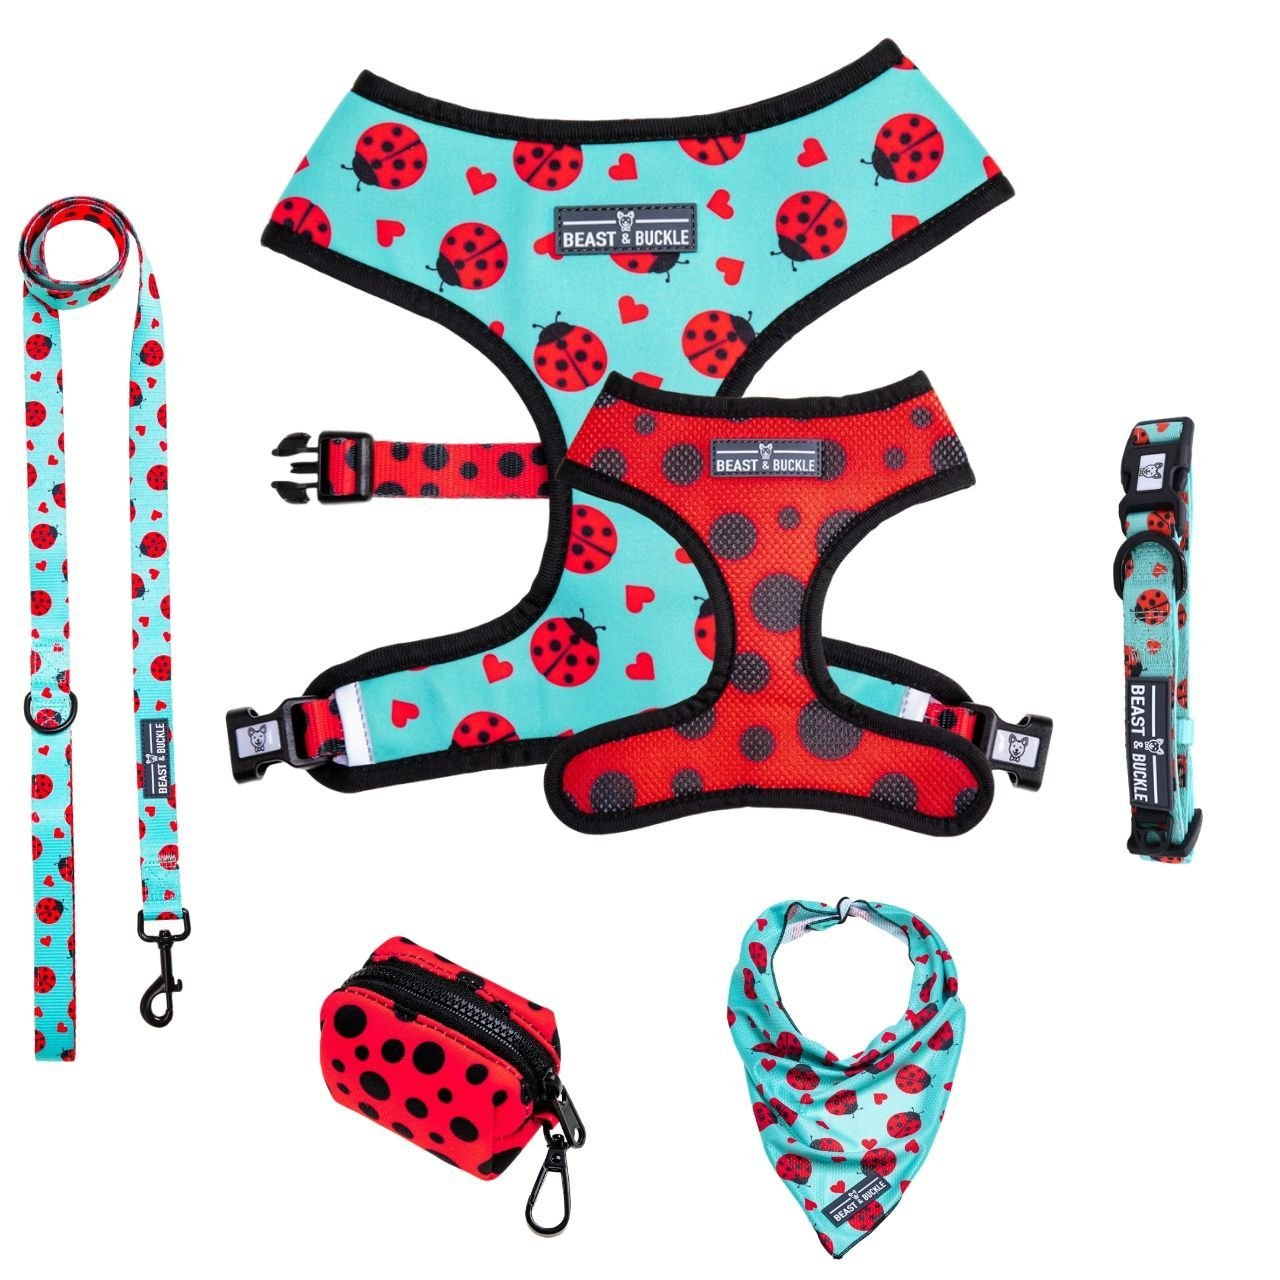 Ladybug Collection Bundle - Beast & Buckle